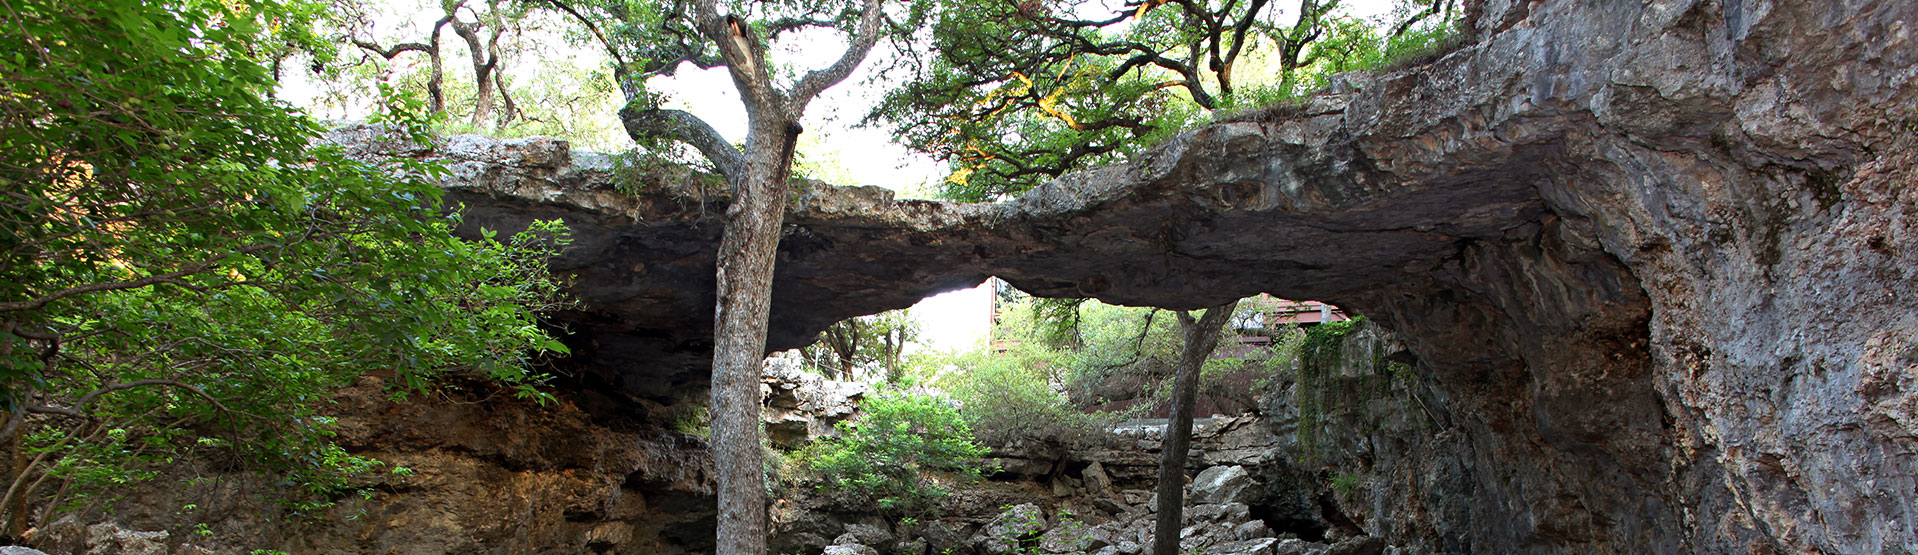 Rock Bridge Formation